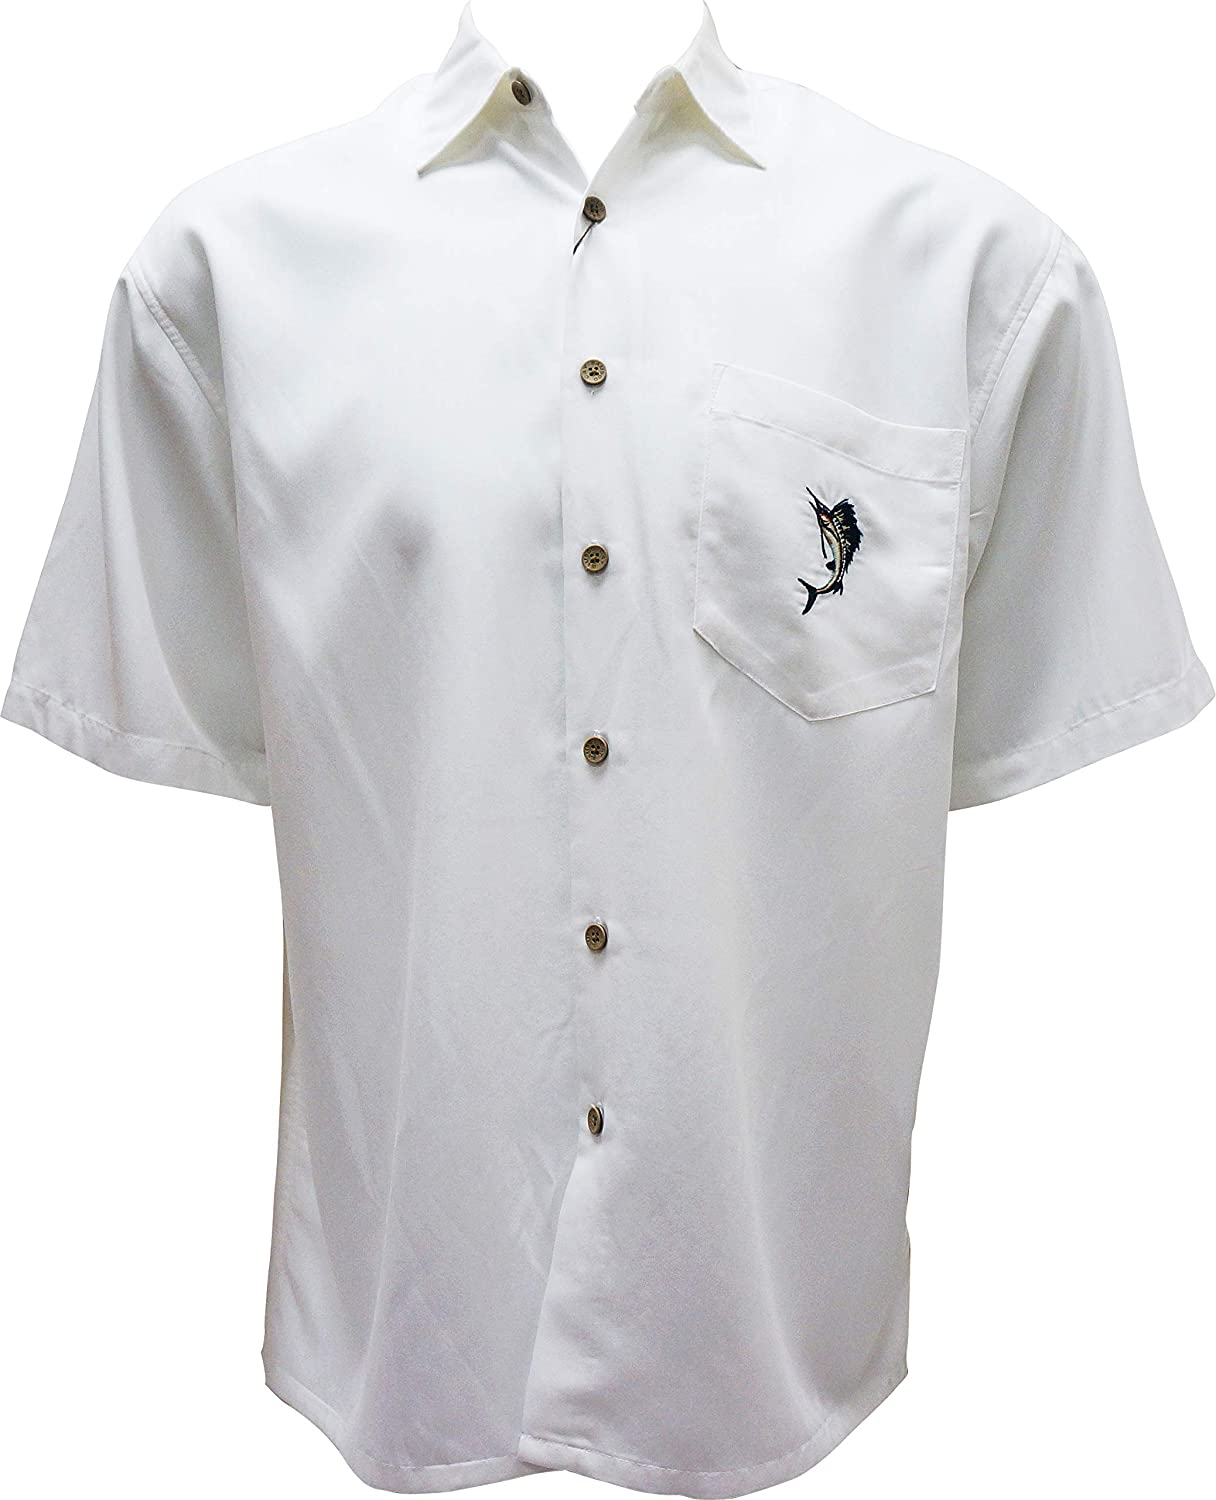 Bamboo Cay Men's Tropical Sailfish Freedom Back Embroidered Camp Shirt